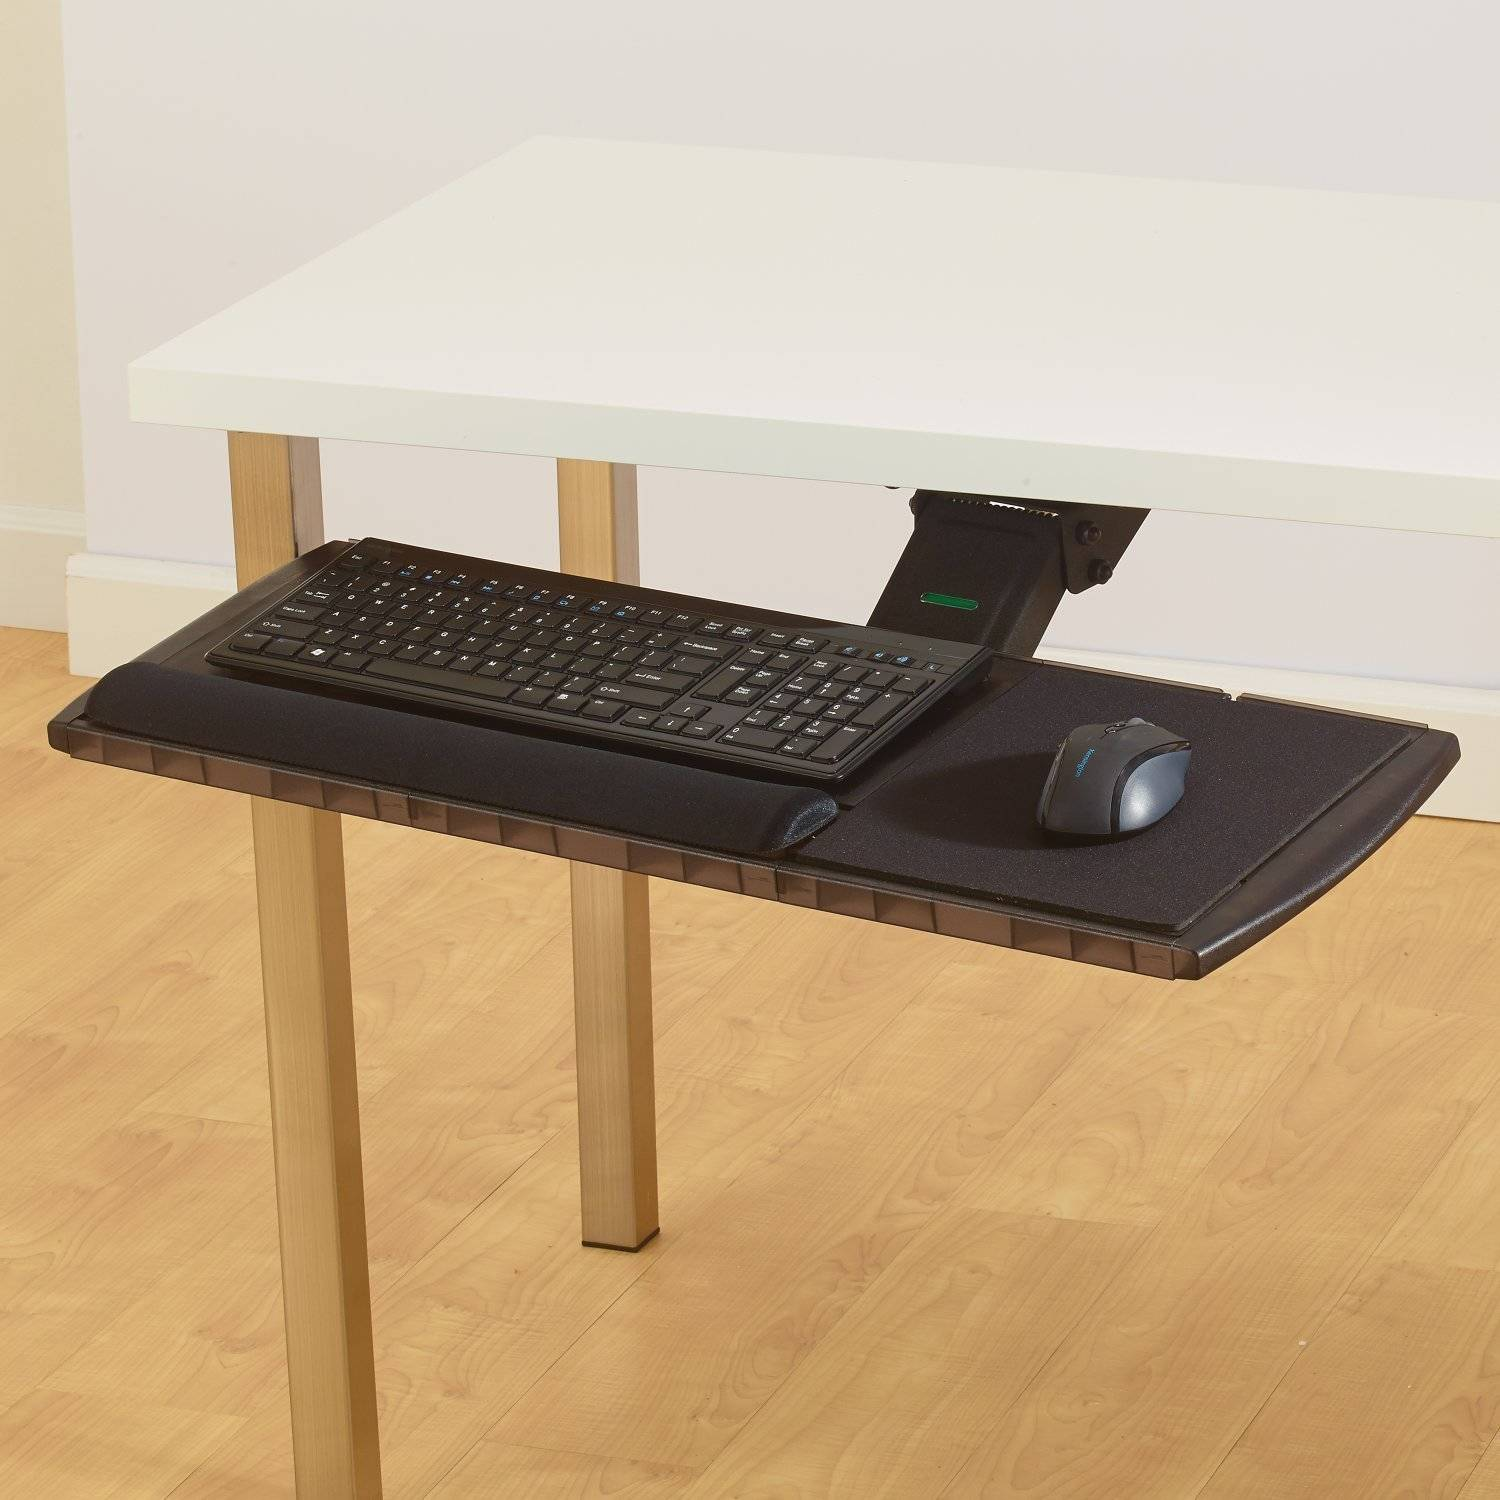 Kensington Modular Keyboard Platform with SmartFit